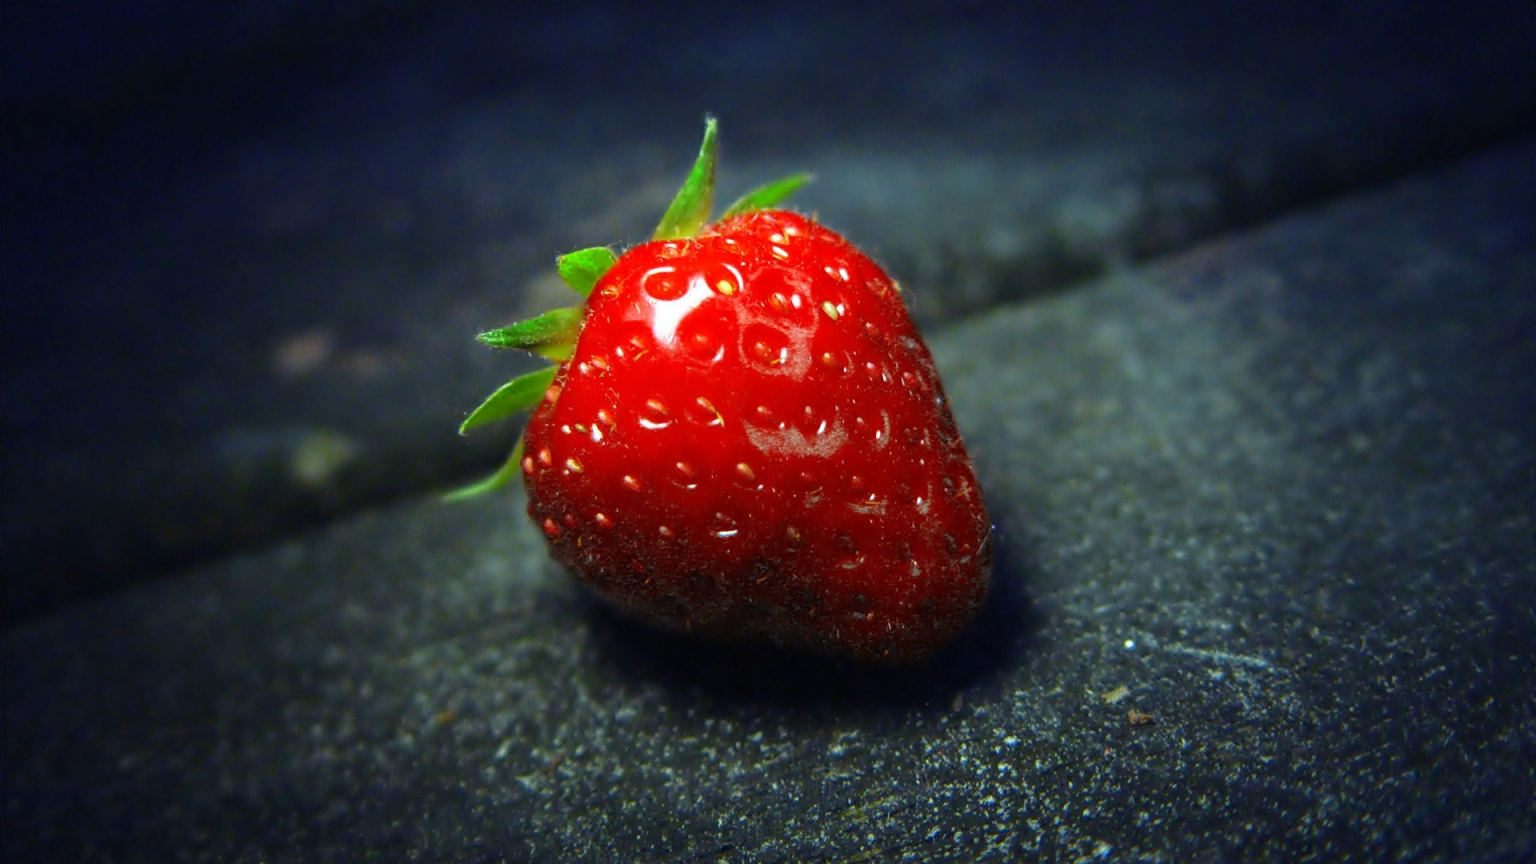 The Strawberry for 1536 x 864 HDTV resolution